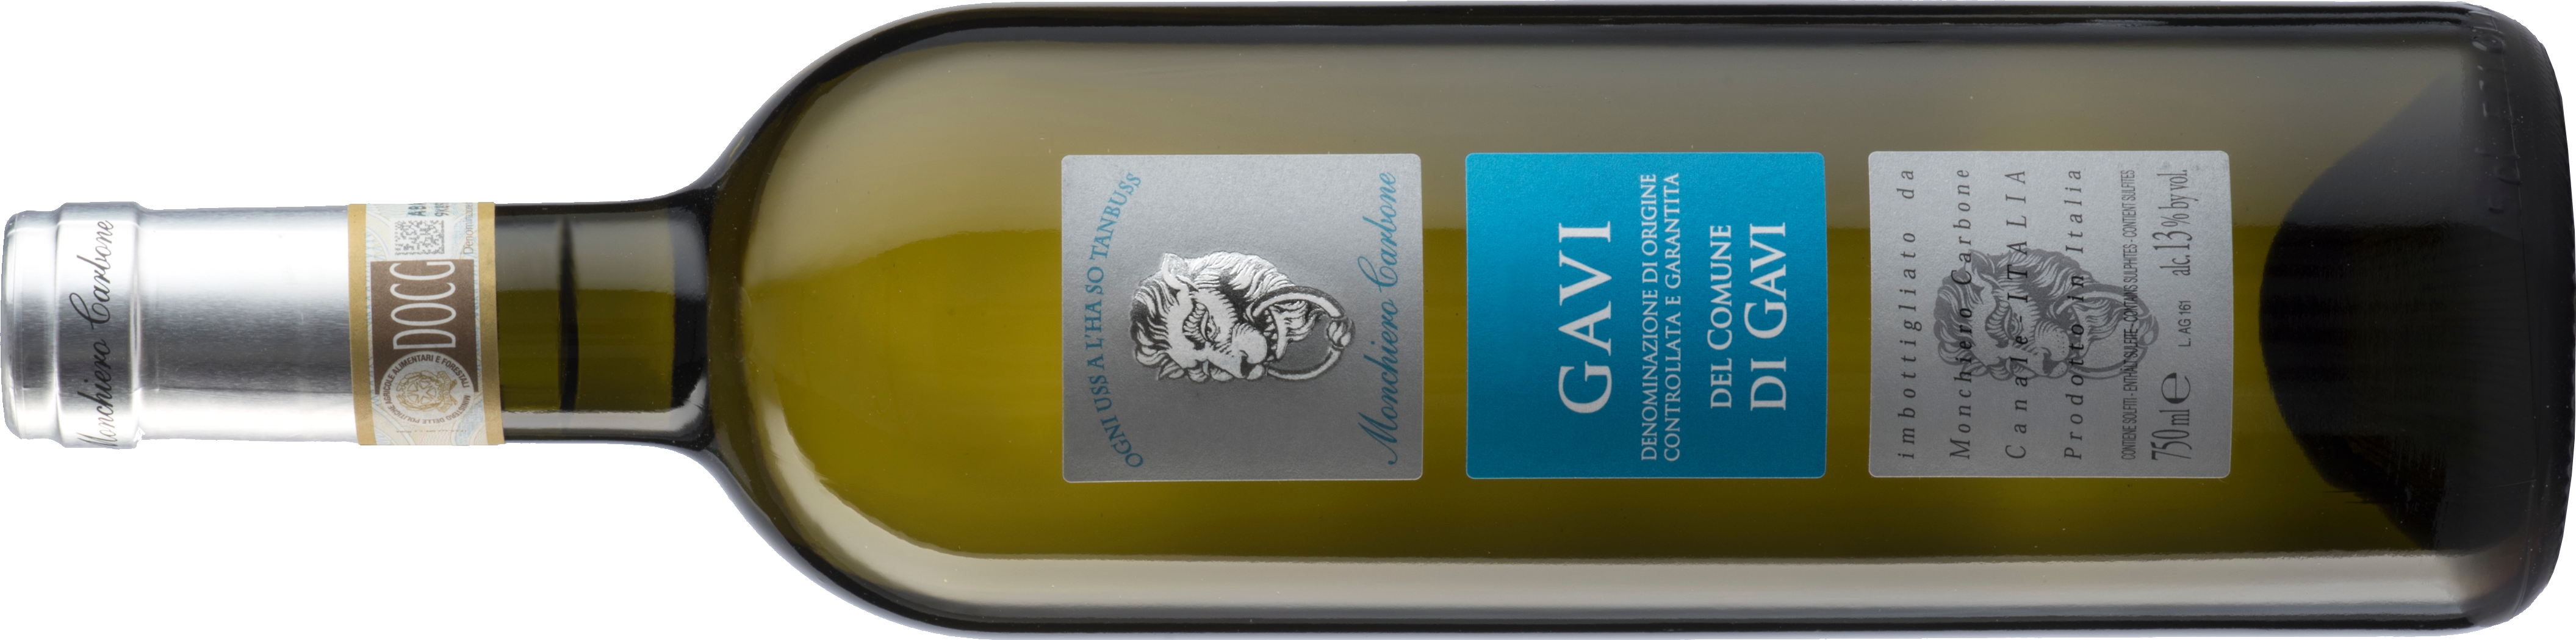 Gavi lying down bottle